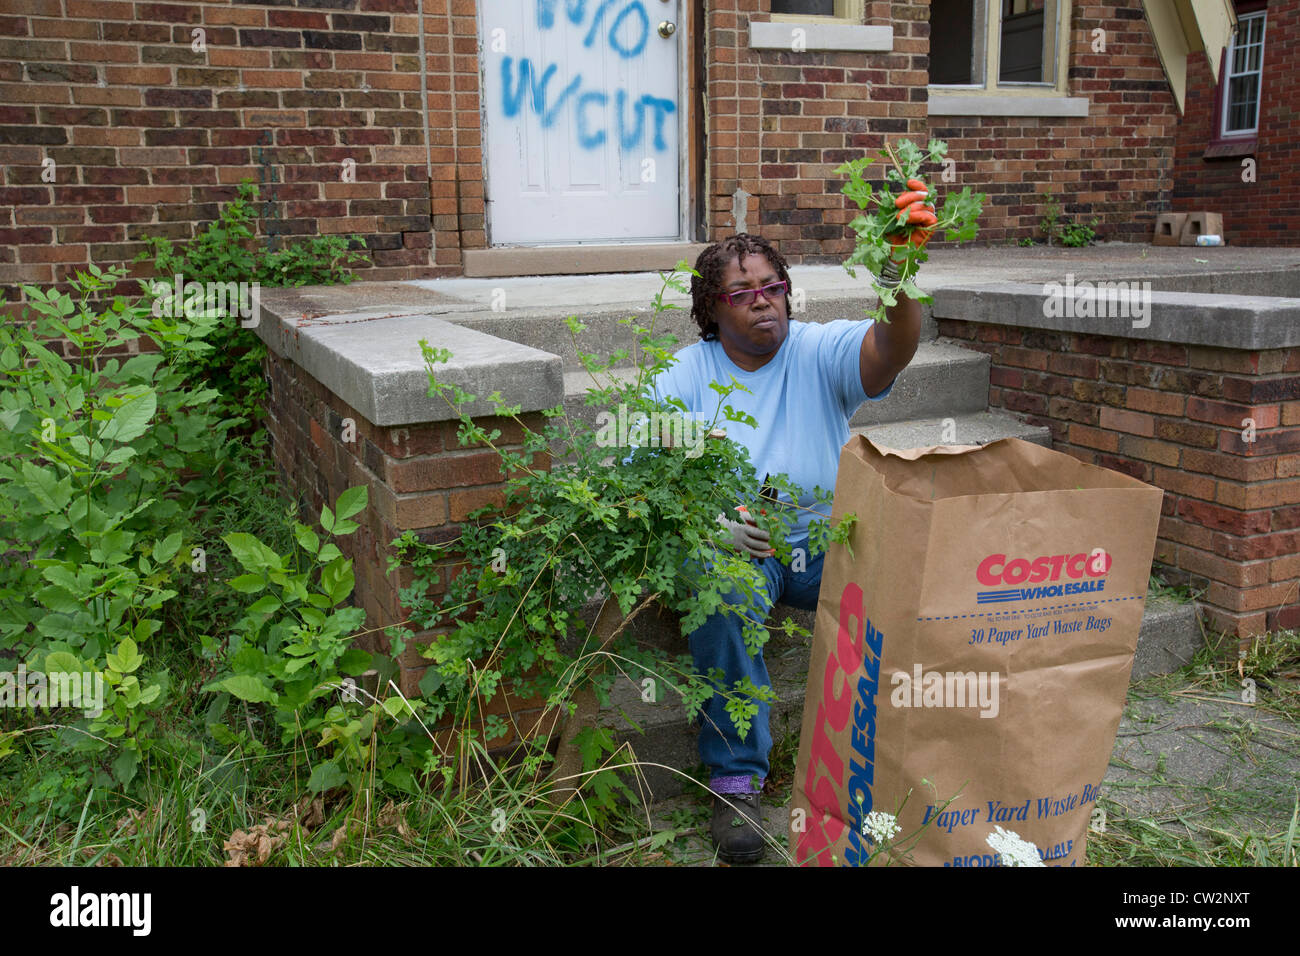 Detroit, Michigan - Members of the Three Mile Block Club cut weeds and remove illegally-dumped trash at an abandoned Stock Photo